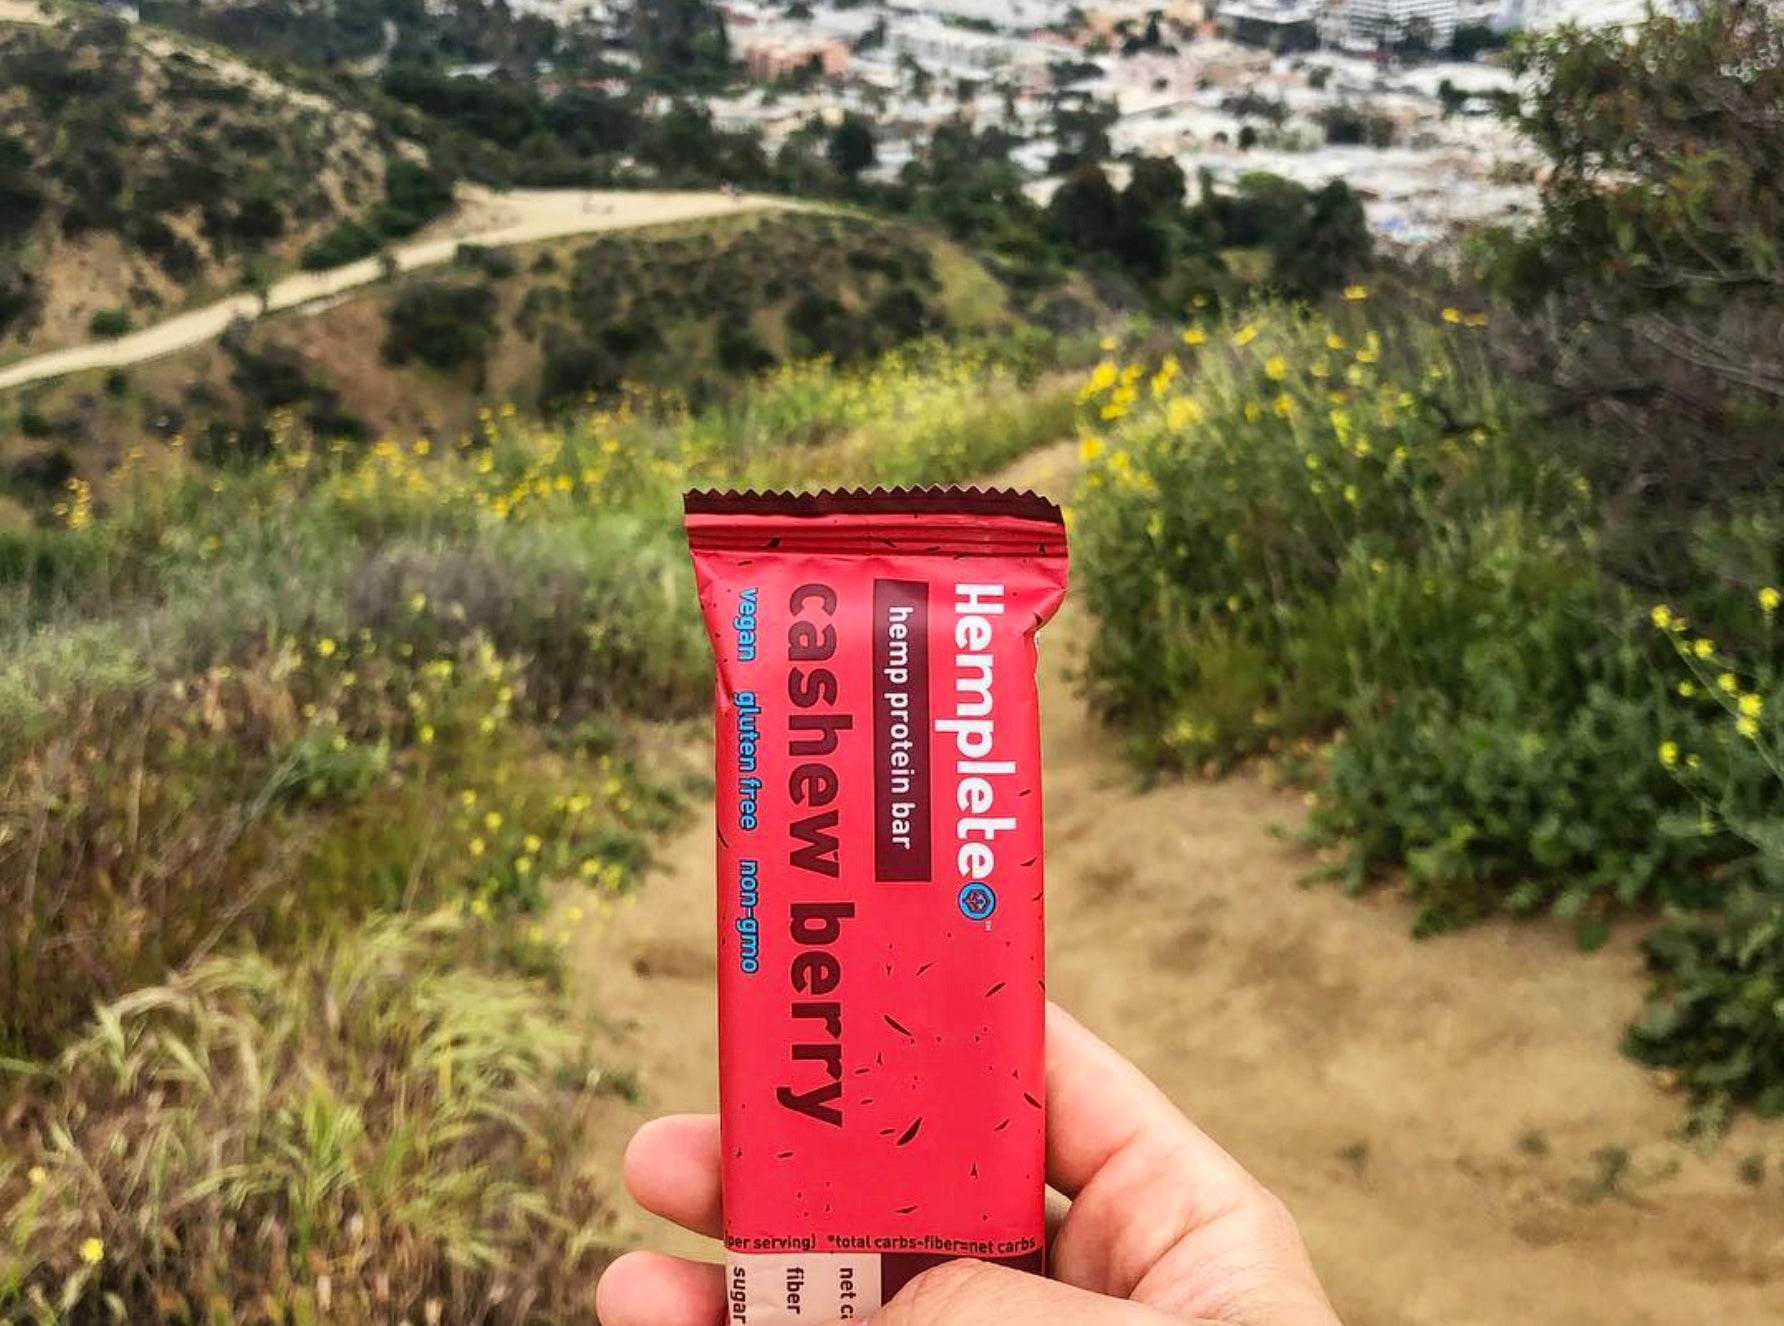 A hemp protein bar held up in front of trails